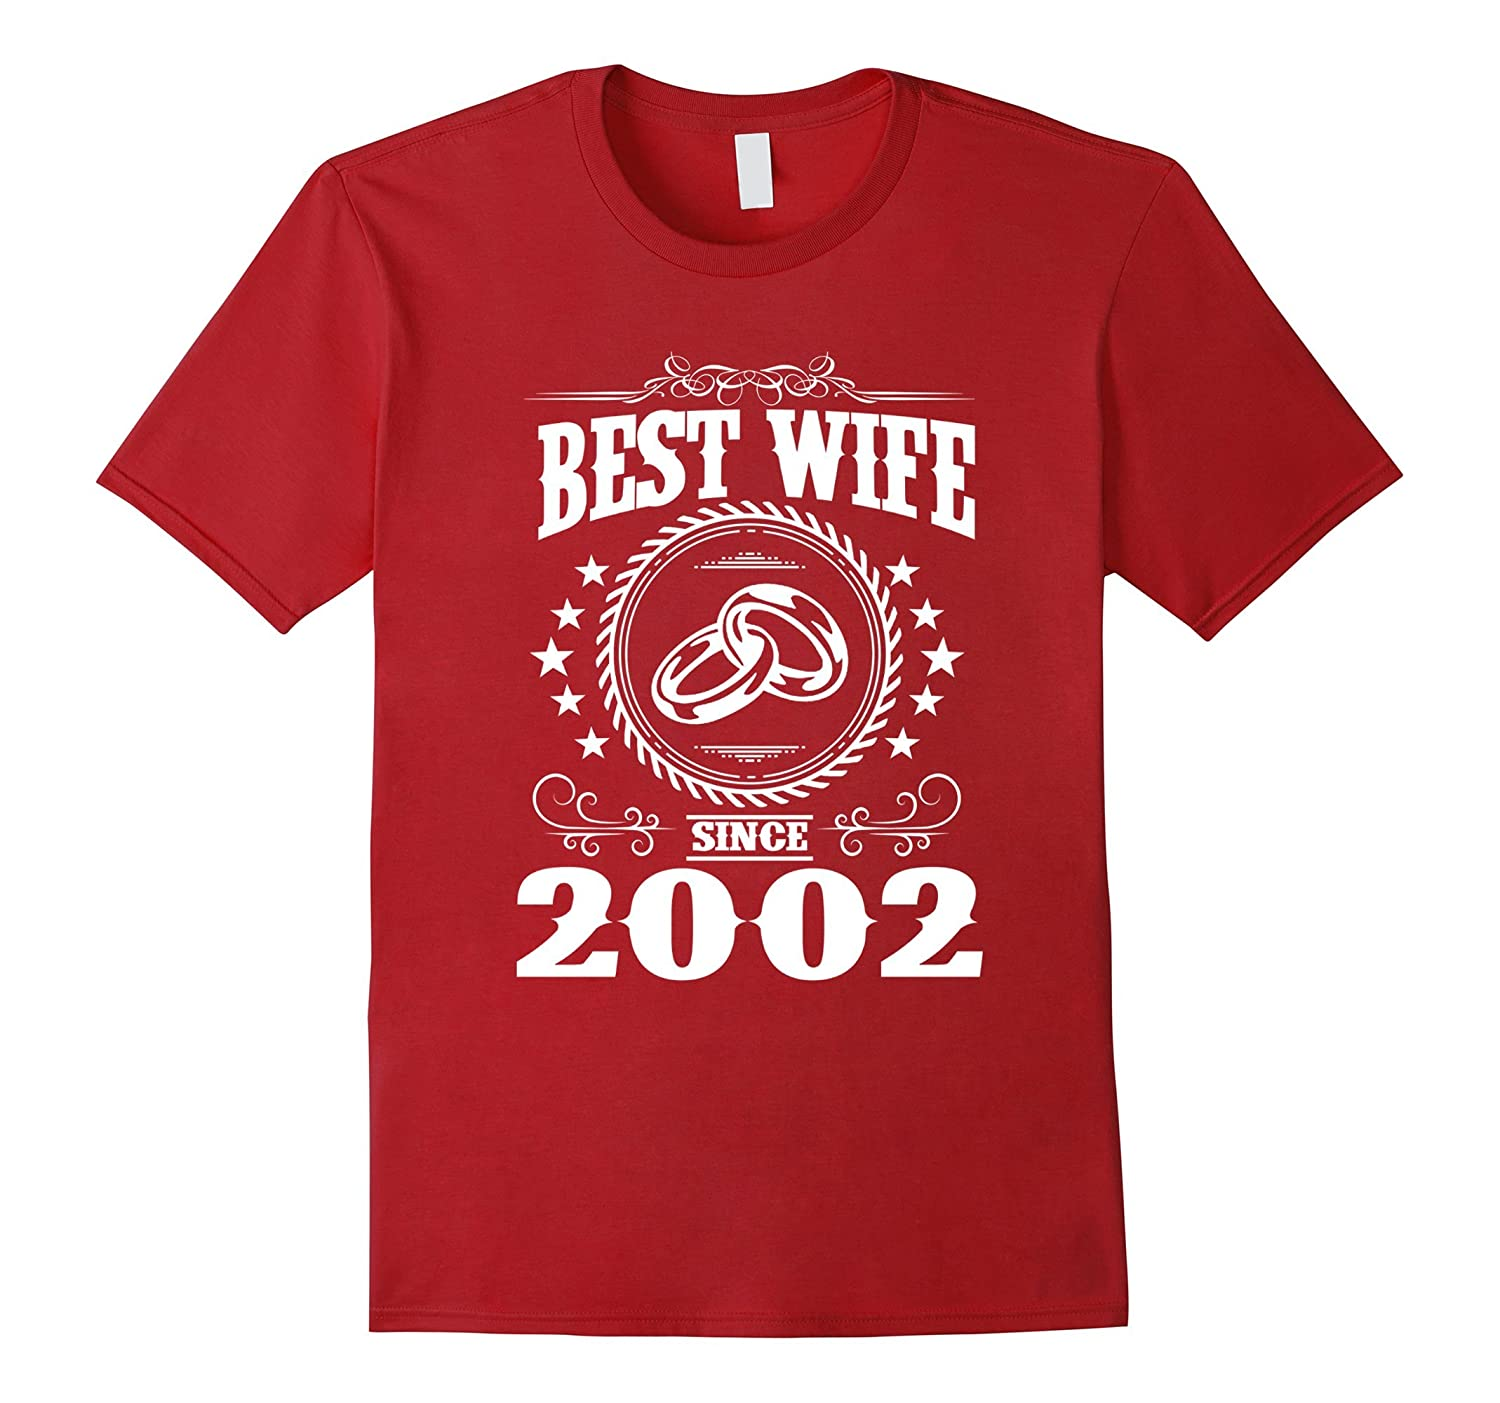 15th Wedding Anniversary T-Shirts For Wife From Husband-PL